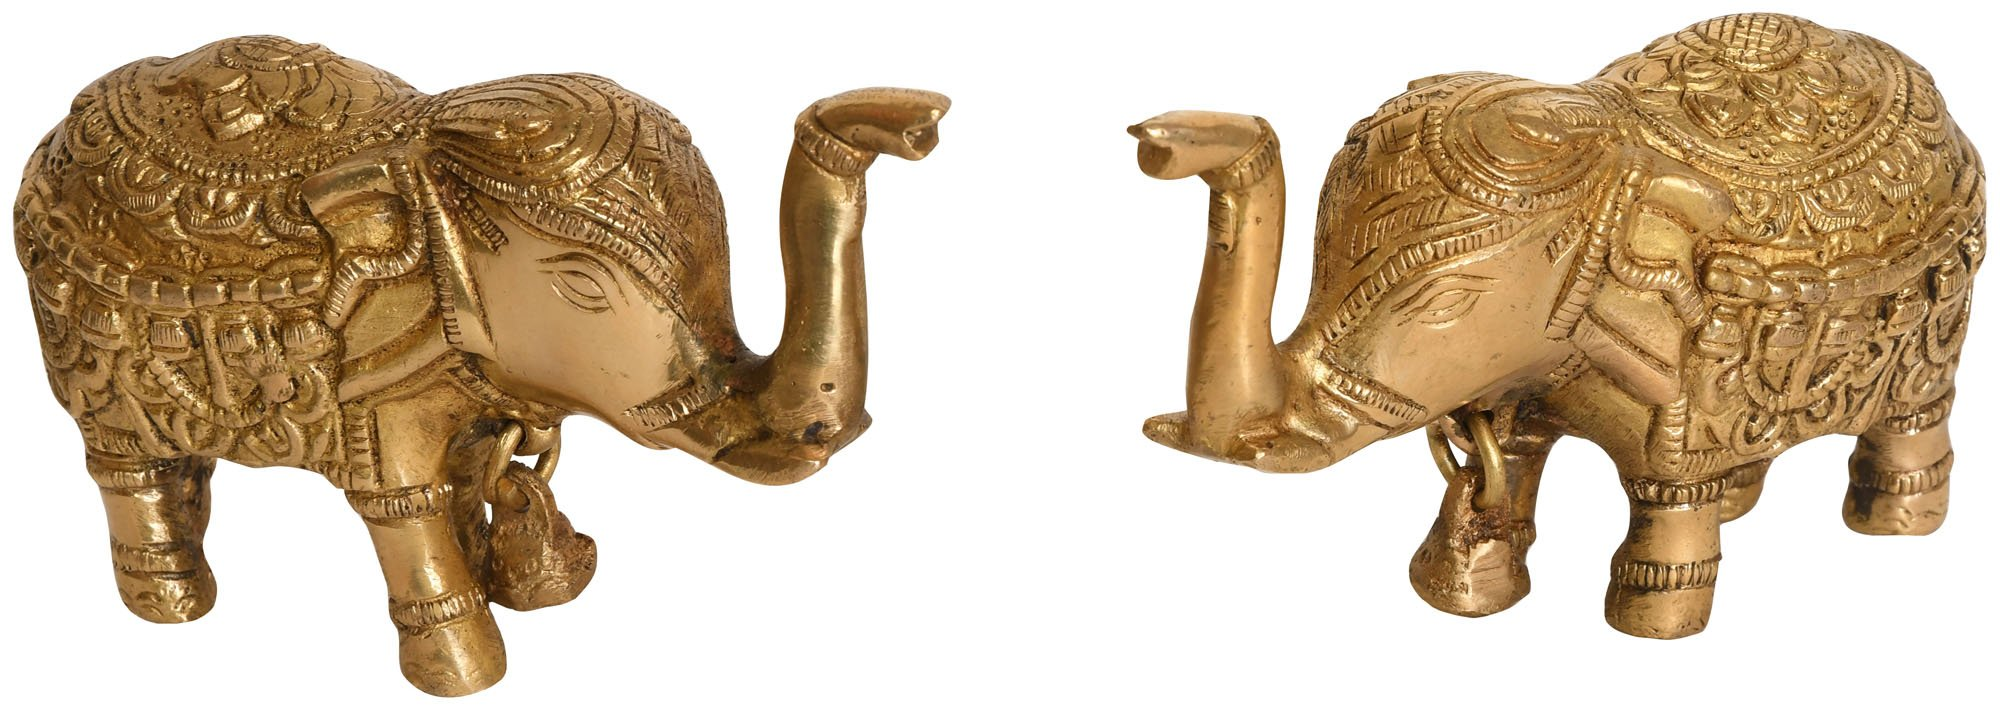 Pair of Upraised Trunk Elephants with Bell (For Vastu) - Brass Statue